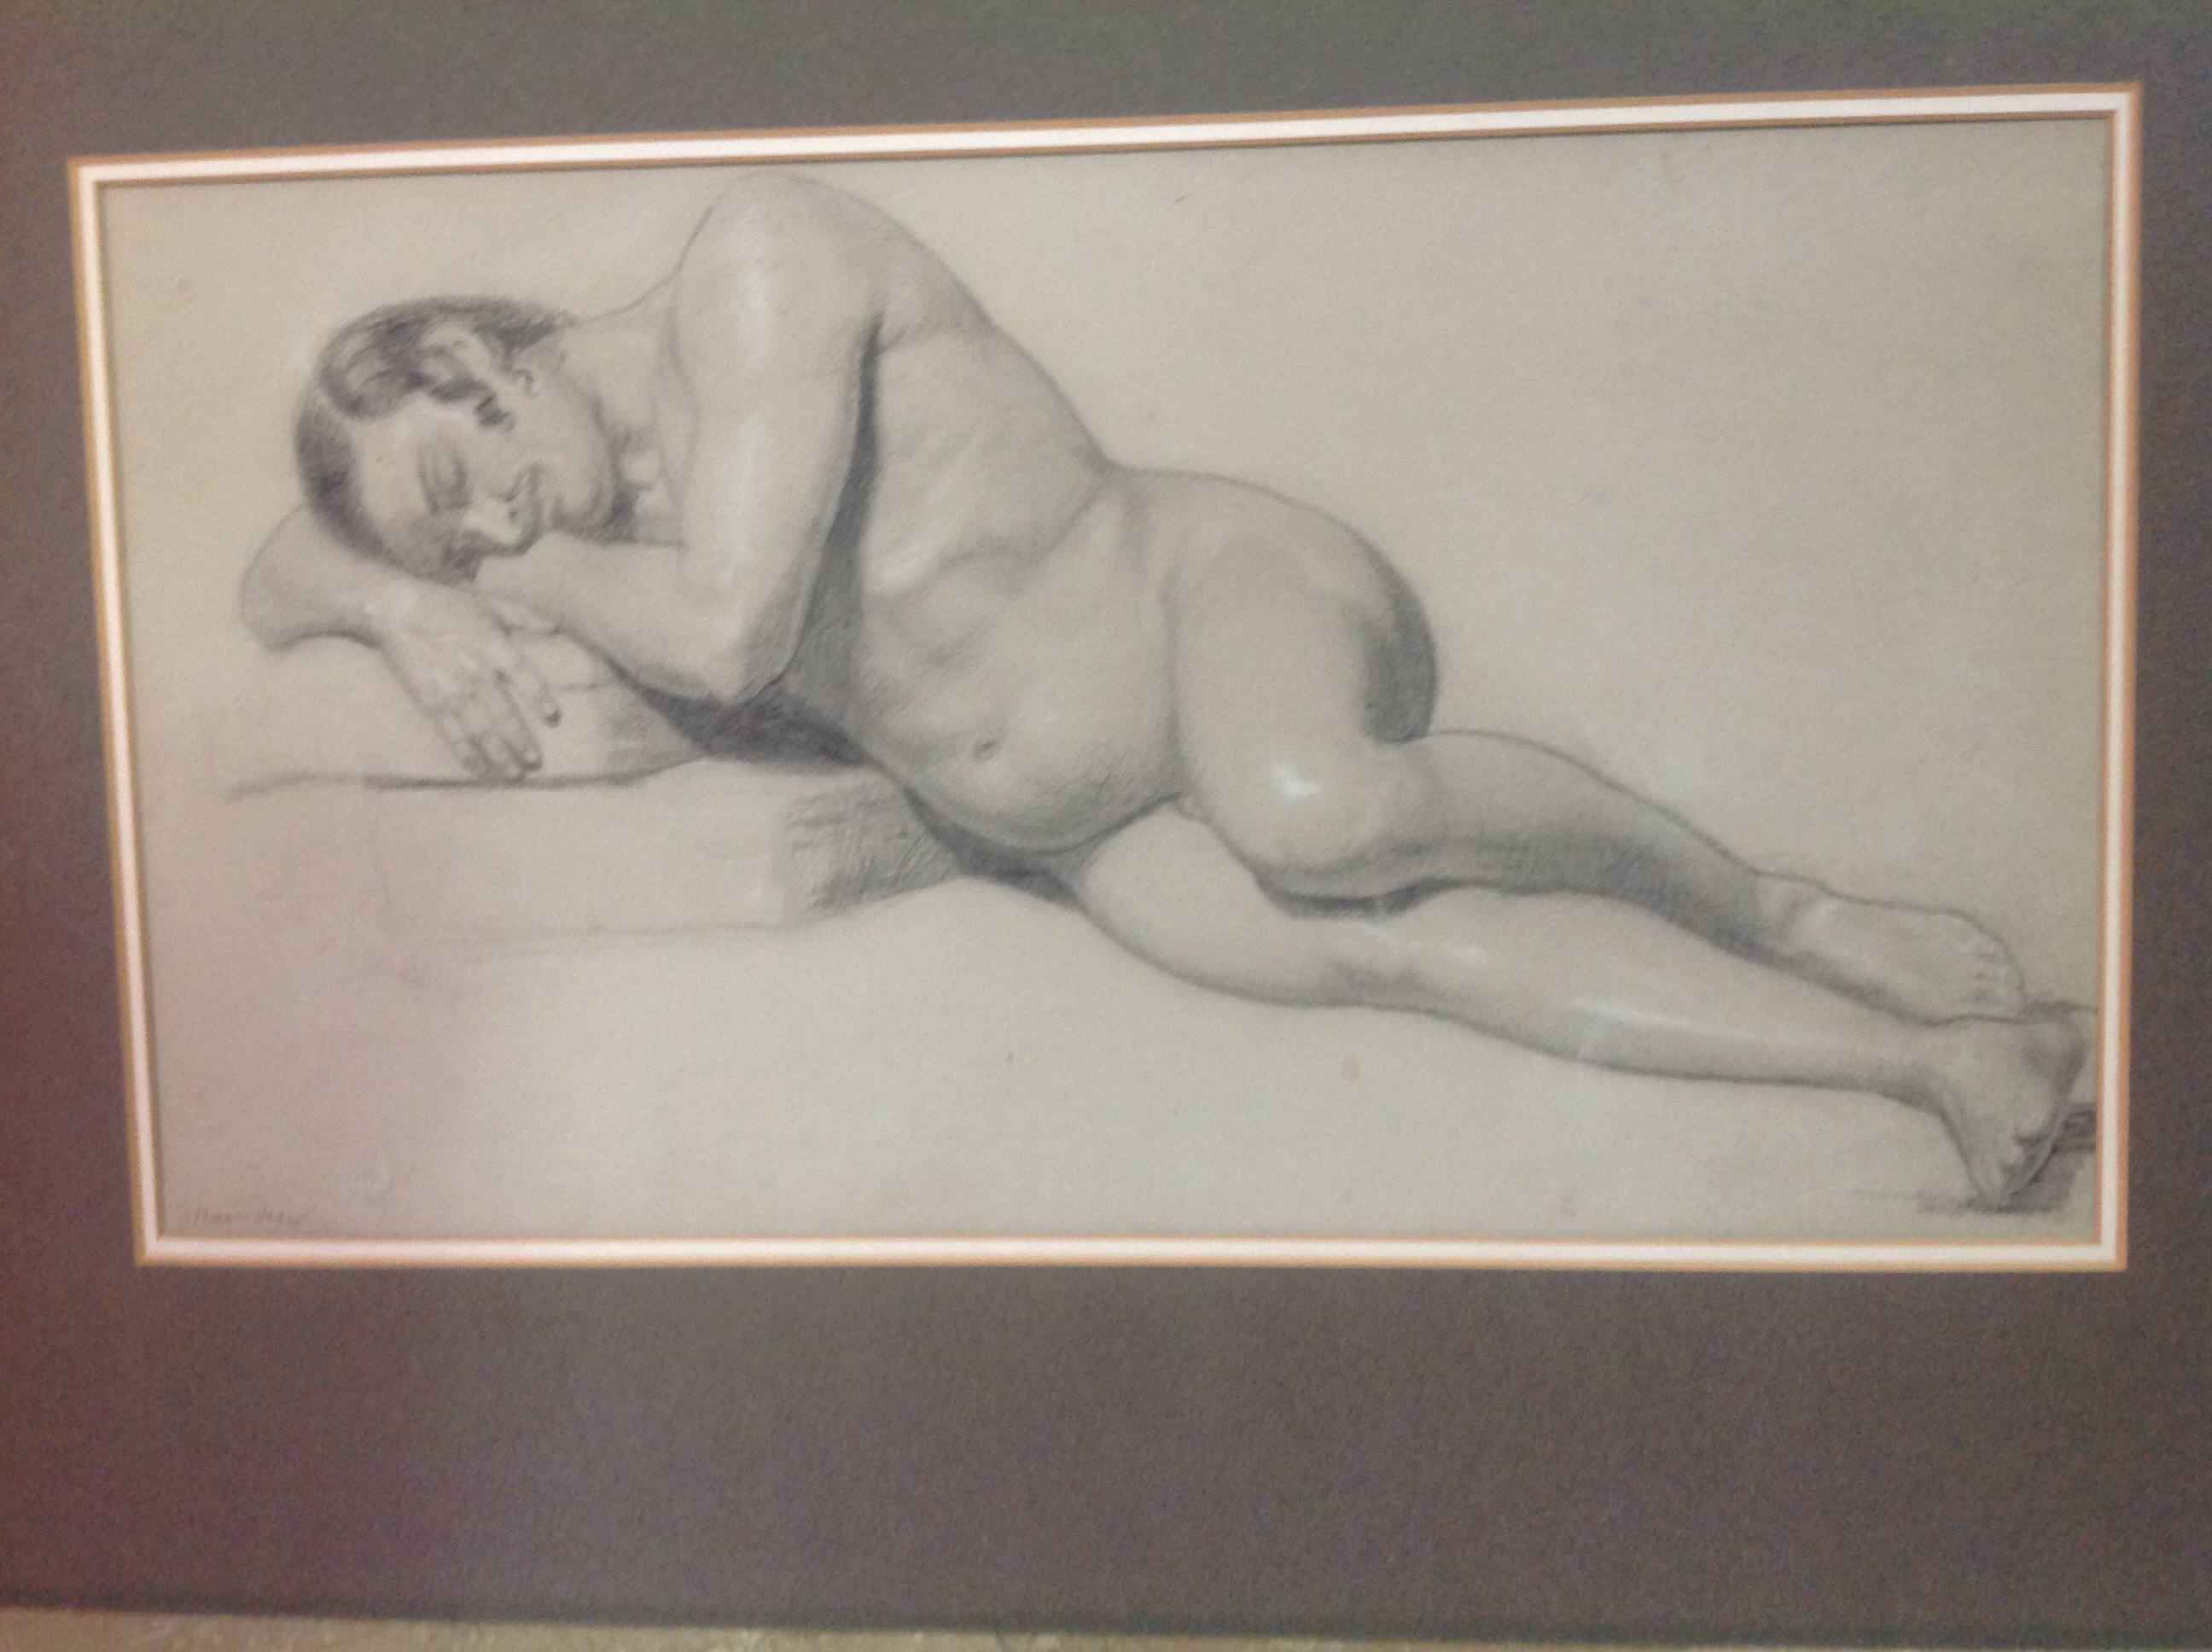 """19th century charcoal and chalk academy sketch on paper, recumbent male nude, 20"""" x 12"""" possibly by Etienne Hippolyte Maindron, a sculptor of the human form, studied at the Ecole des Beaux Arts in the 1820s- Legion of Honour awarded in 1874. Most of his works can be seen in the Museum of Fine Arts in Angers, France"""